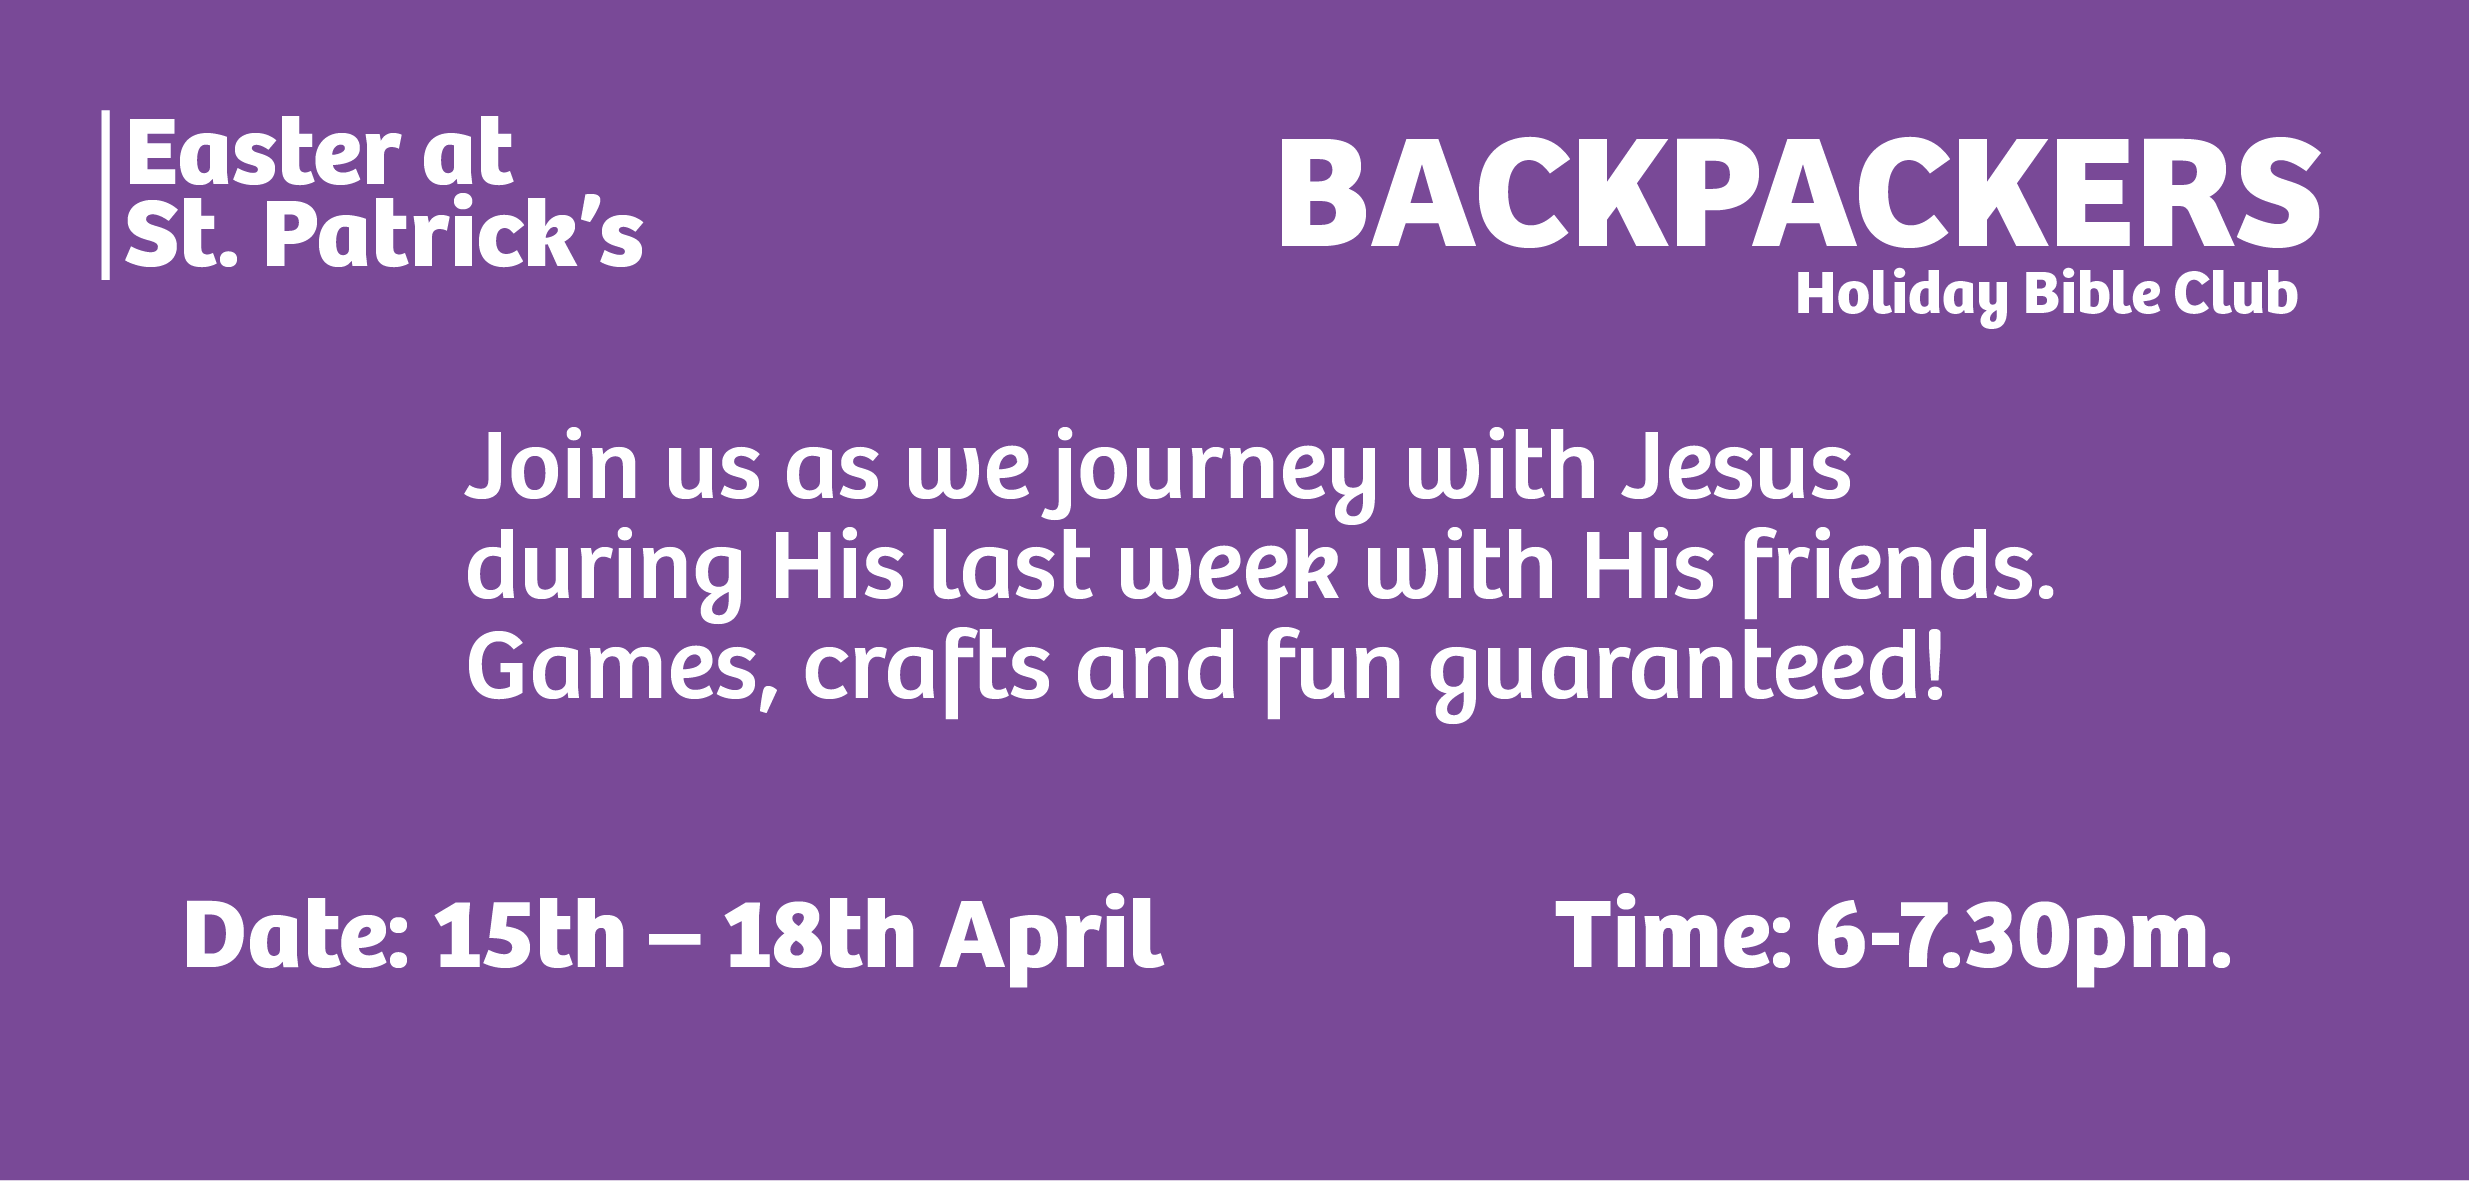 backpakers